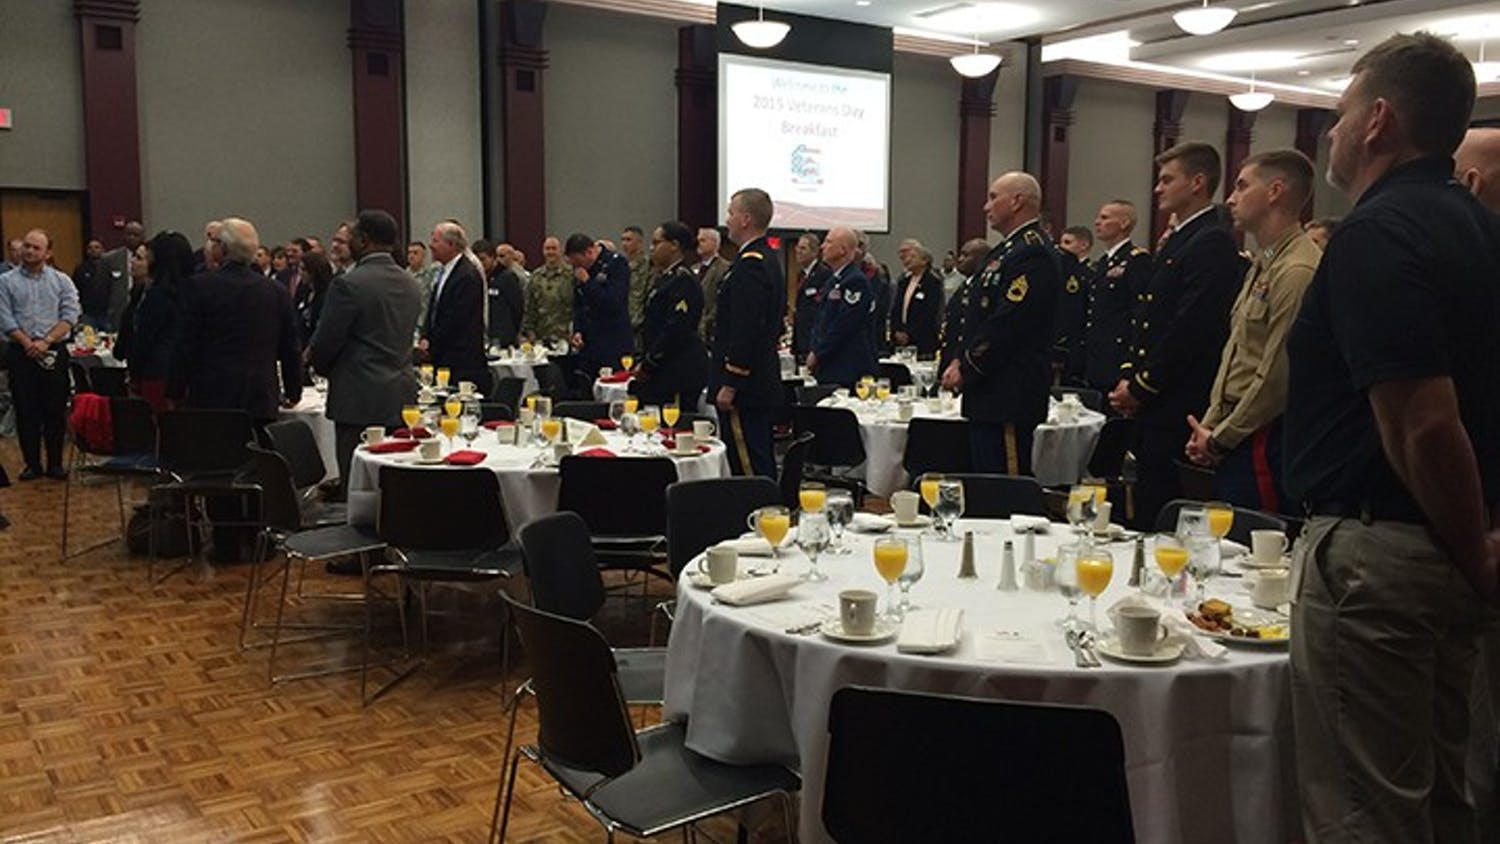 The Veteran's Day Breakfast has grown significantly since it's beginning seven years ago, drawing hundreds of veterans from across the state.